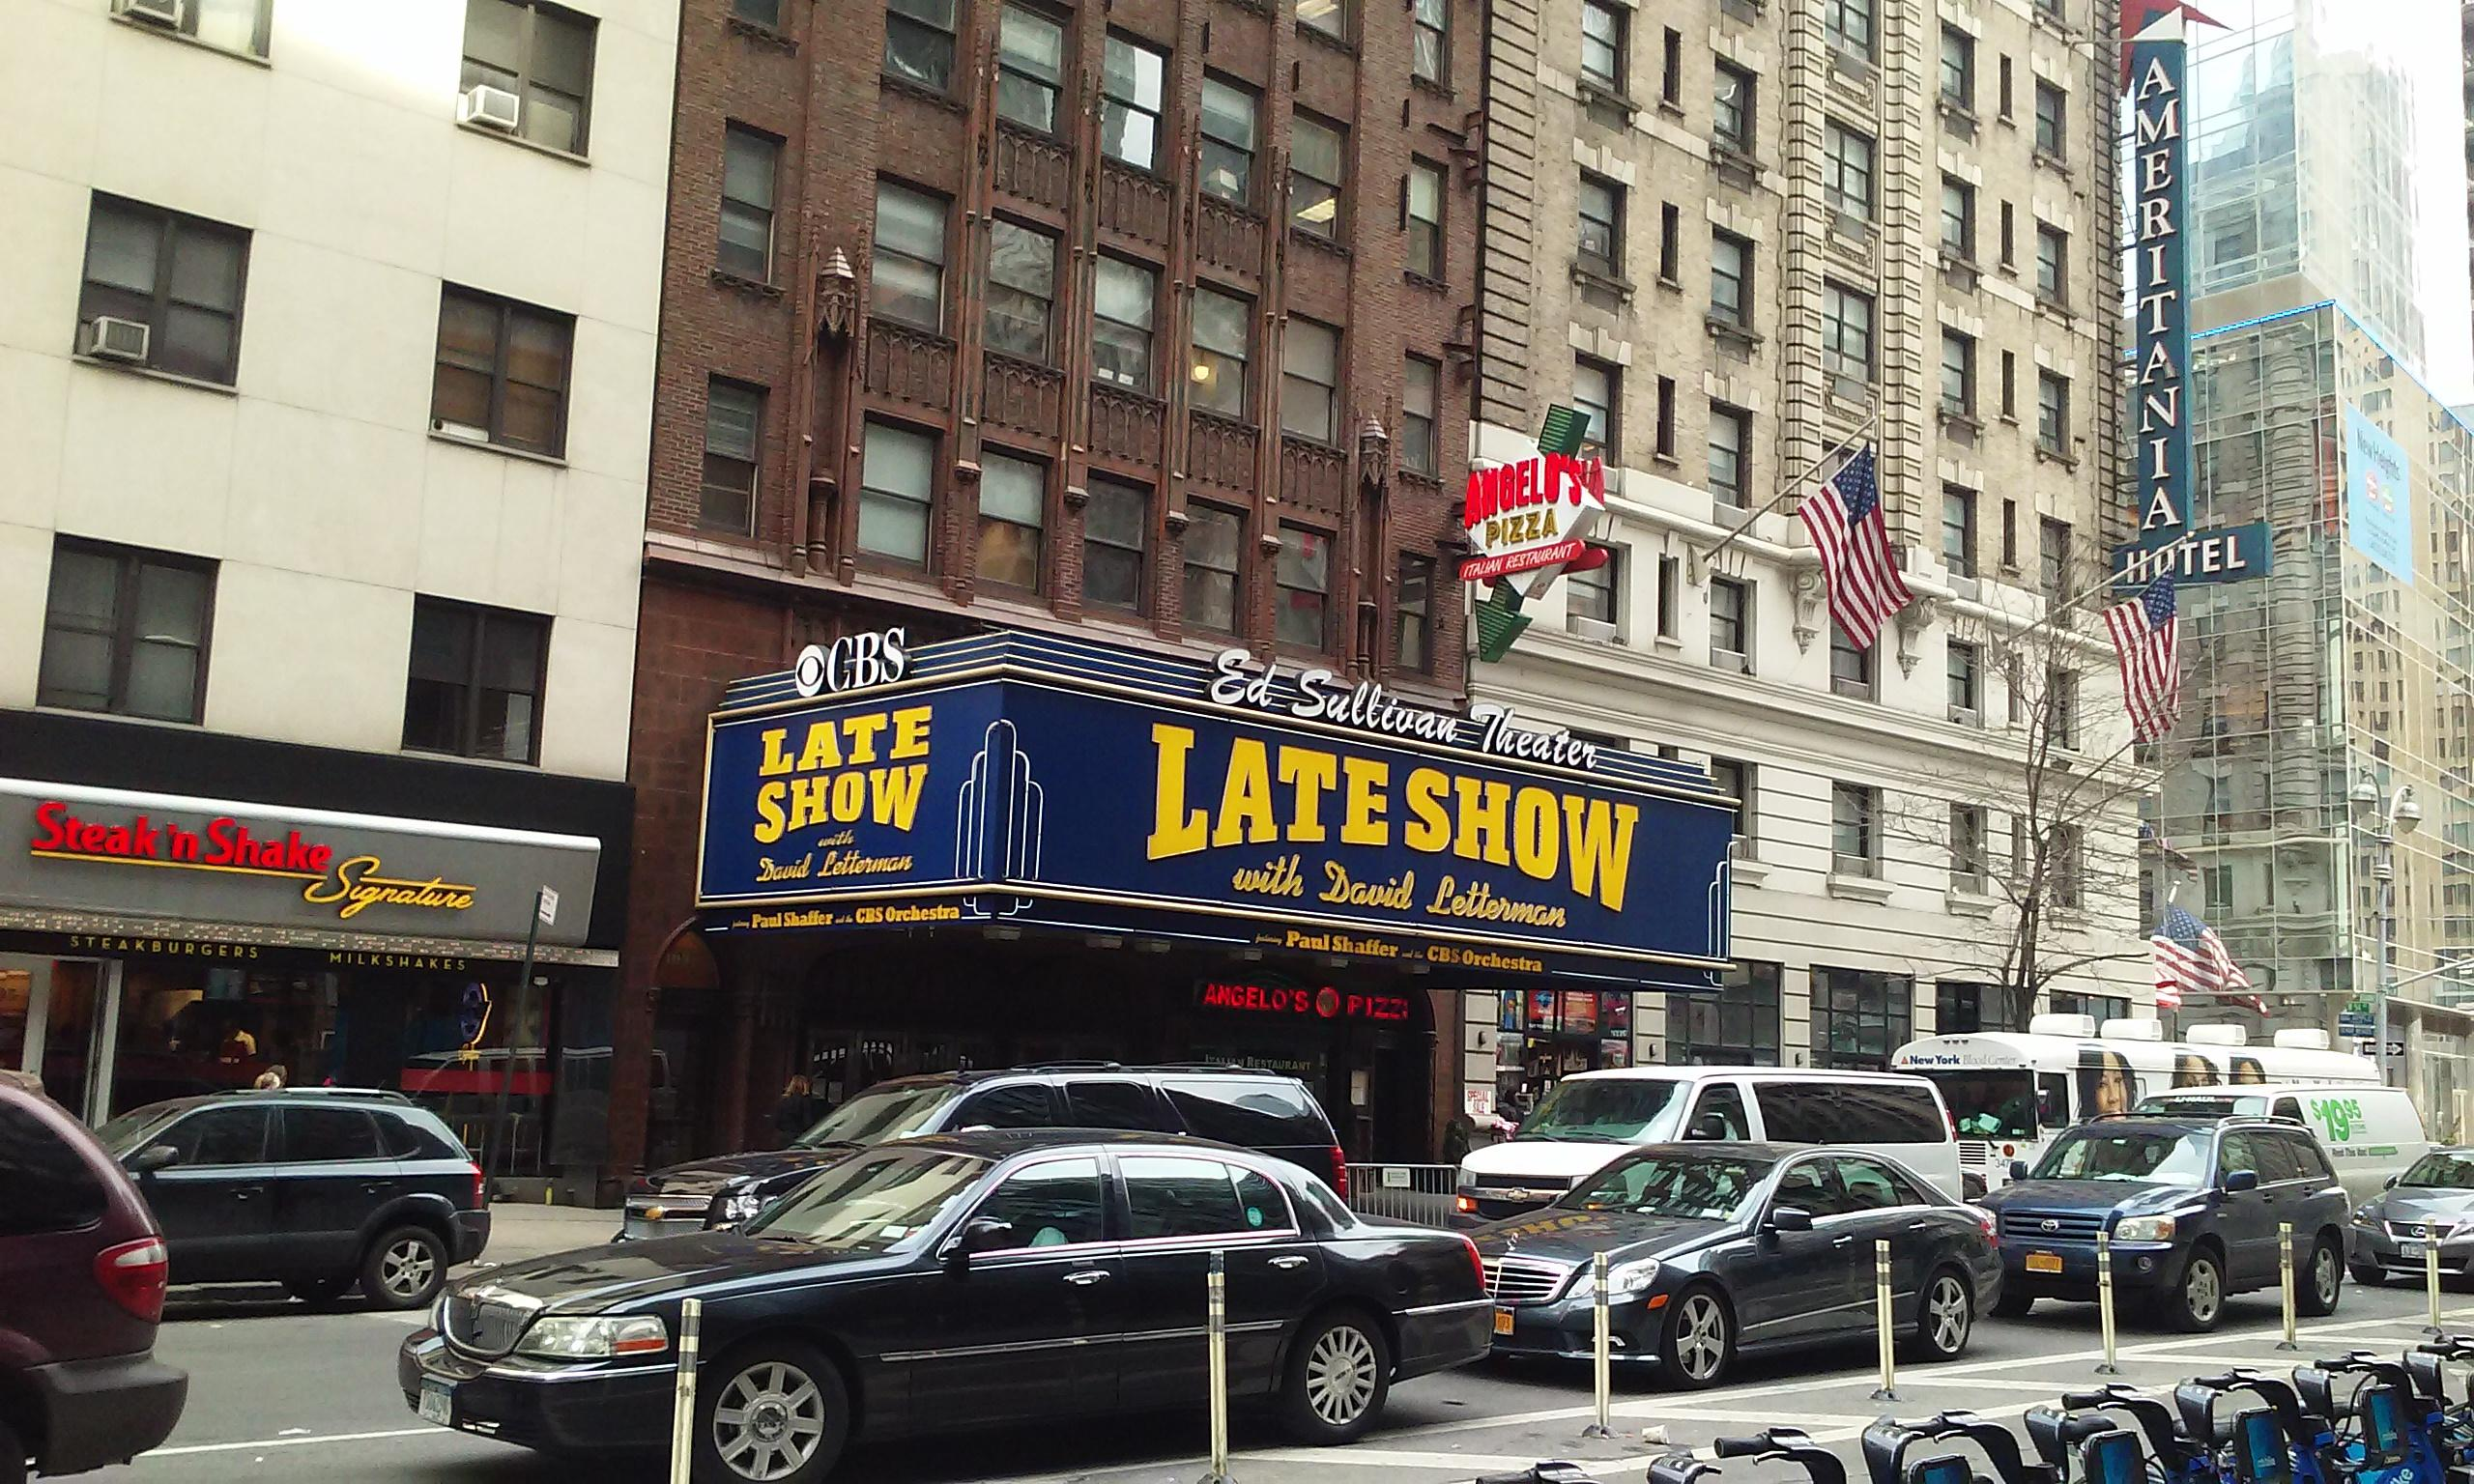 Ed Sullivan Theater Late Show with David Letterman. Right outside the e train subway stati